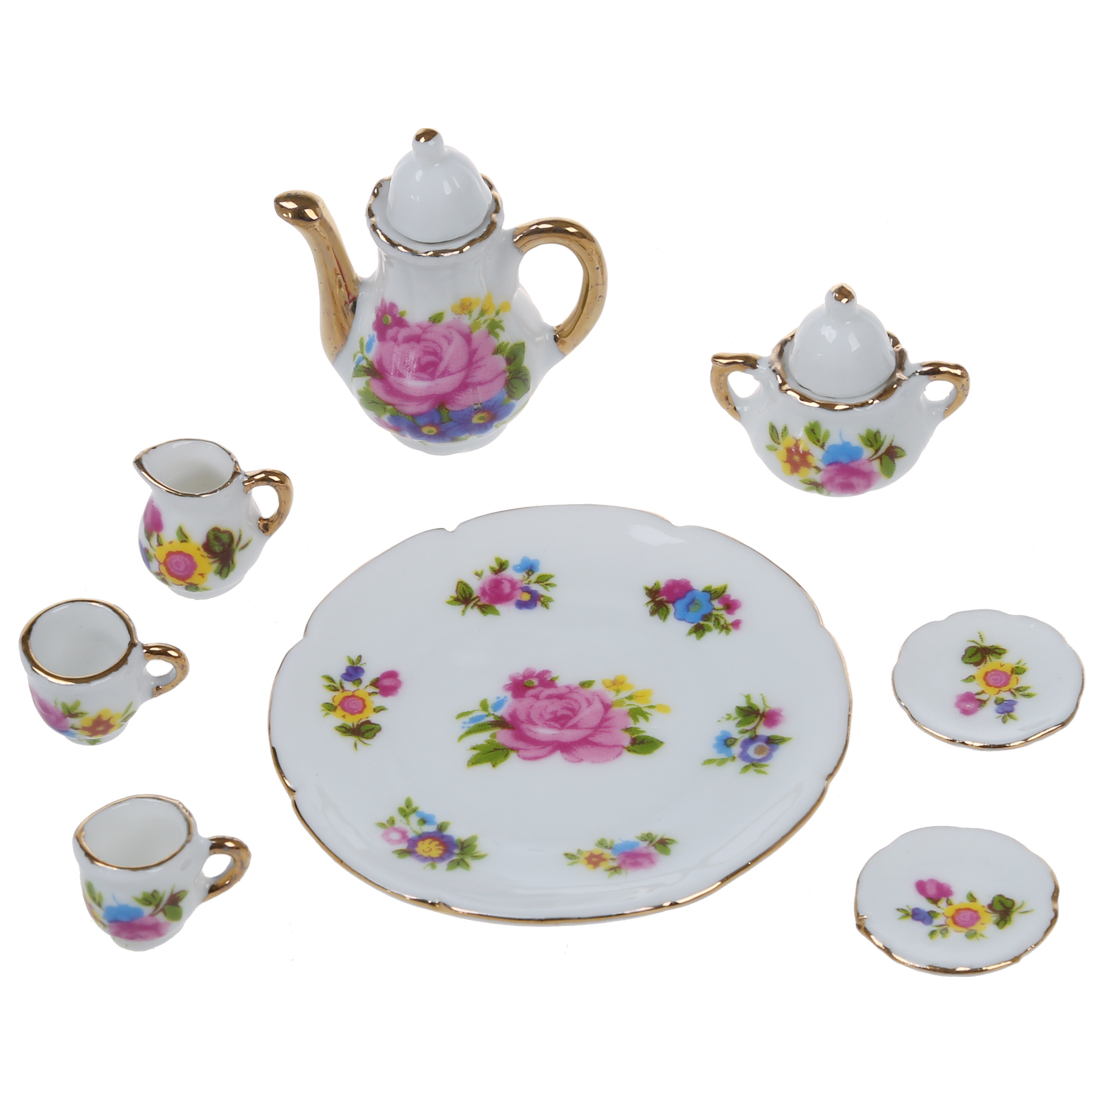 8pcs 1/6 Dollhouse Miniature Dining Ware Porcelain Dish/<font><b>Cup</b></font>/Plate Tea <font><b>Set</b></font>---Pink Rose image